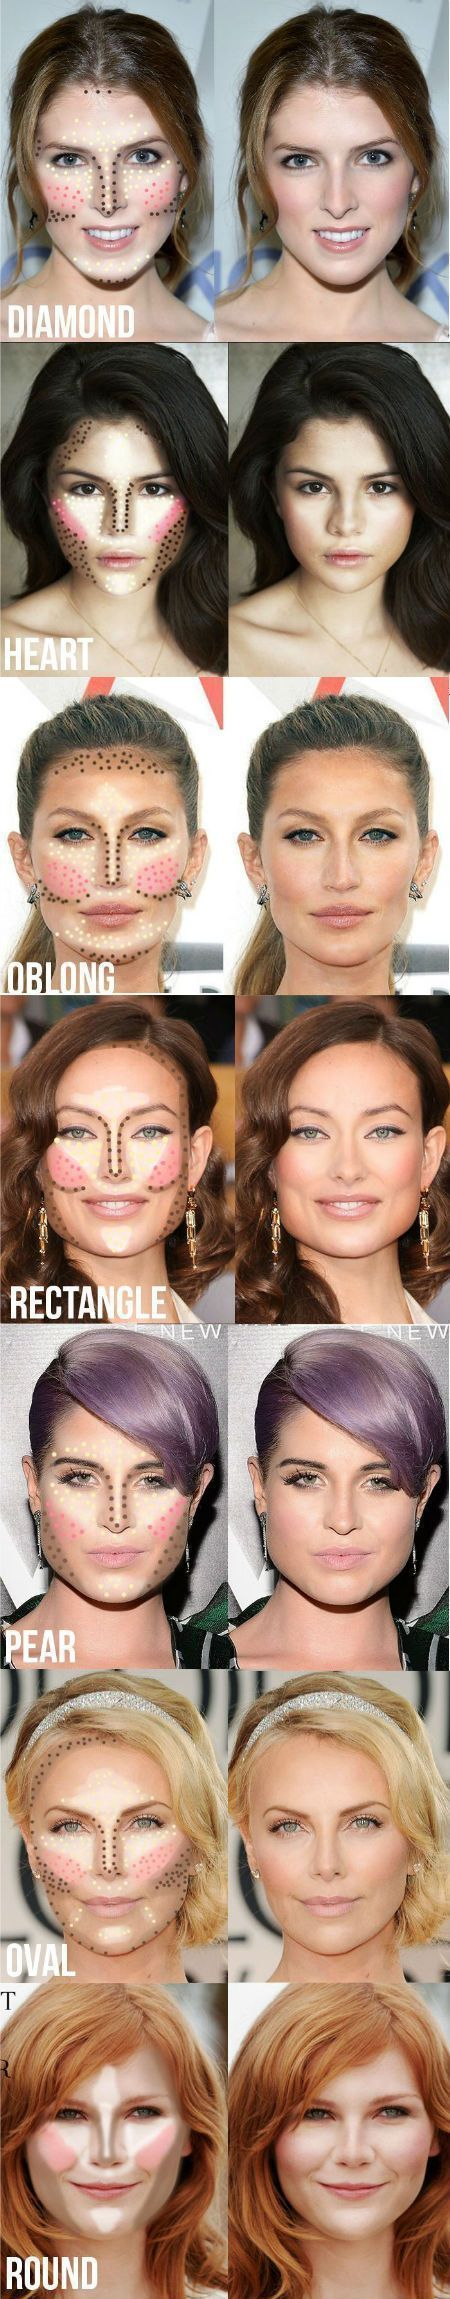 Face Contouring Diagram By Face Shape                                                                                                                                                                                 More